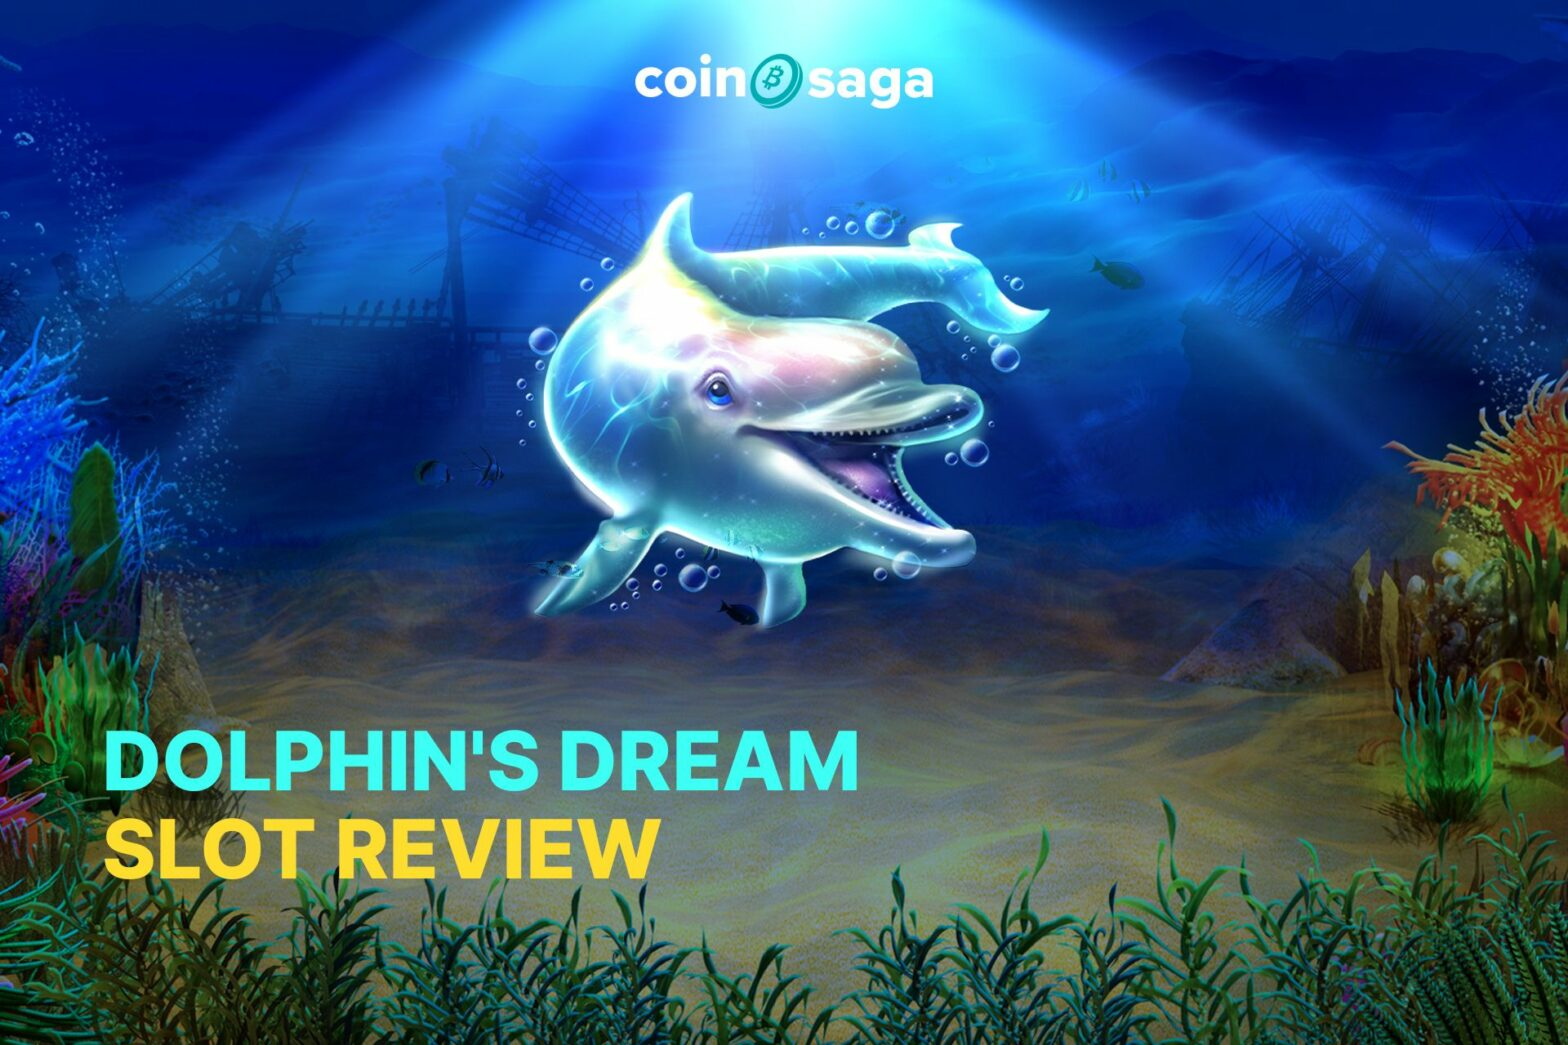 dolphins dreams slot review